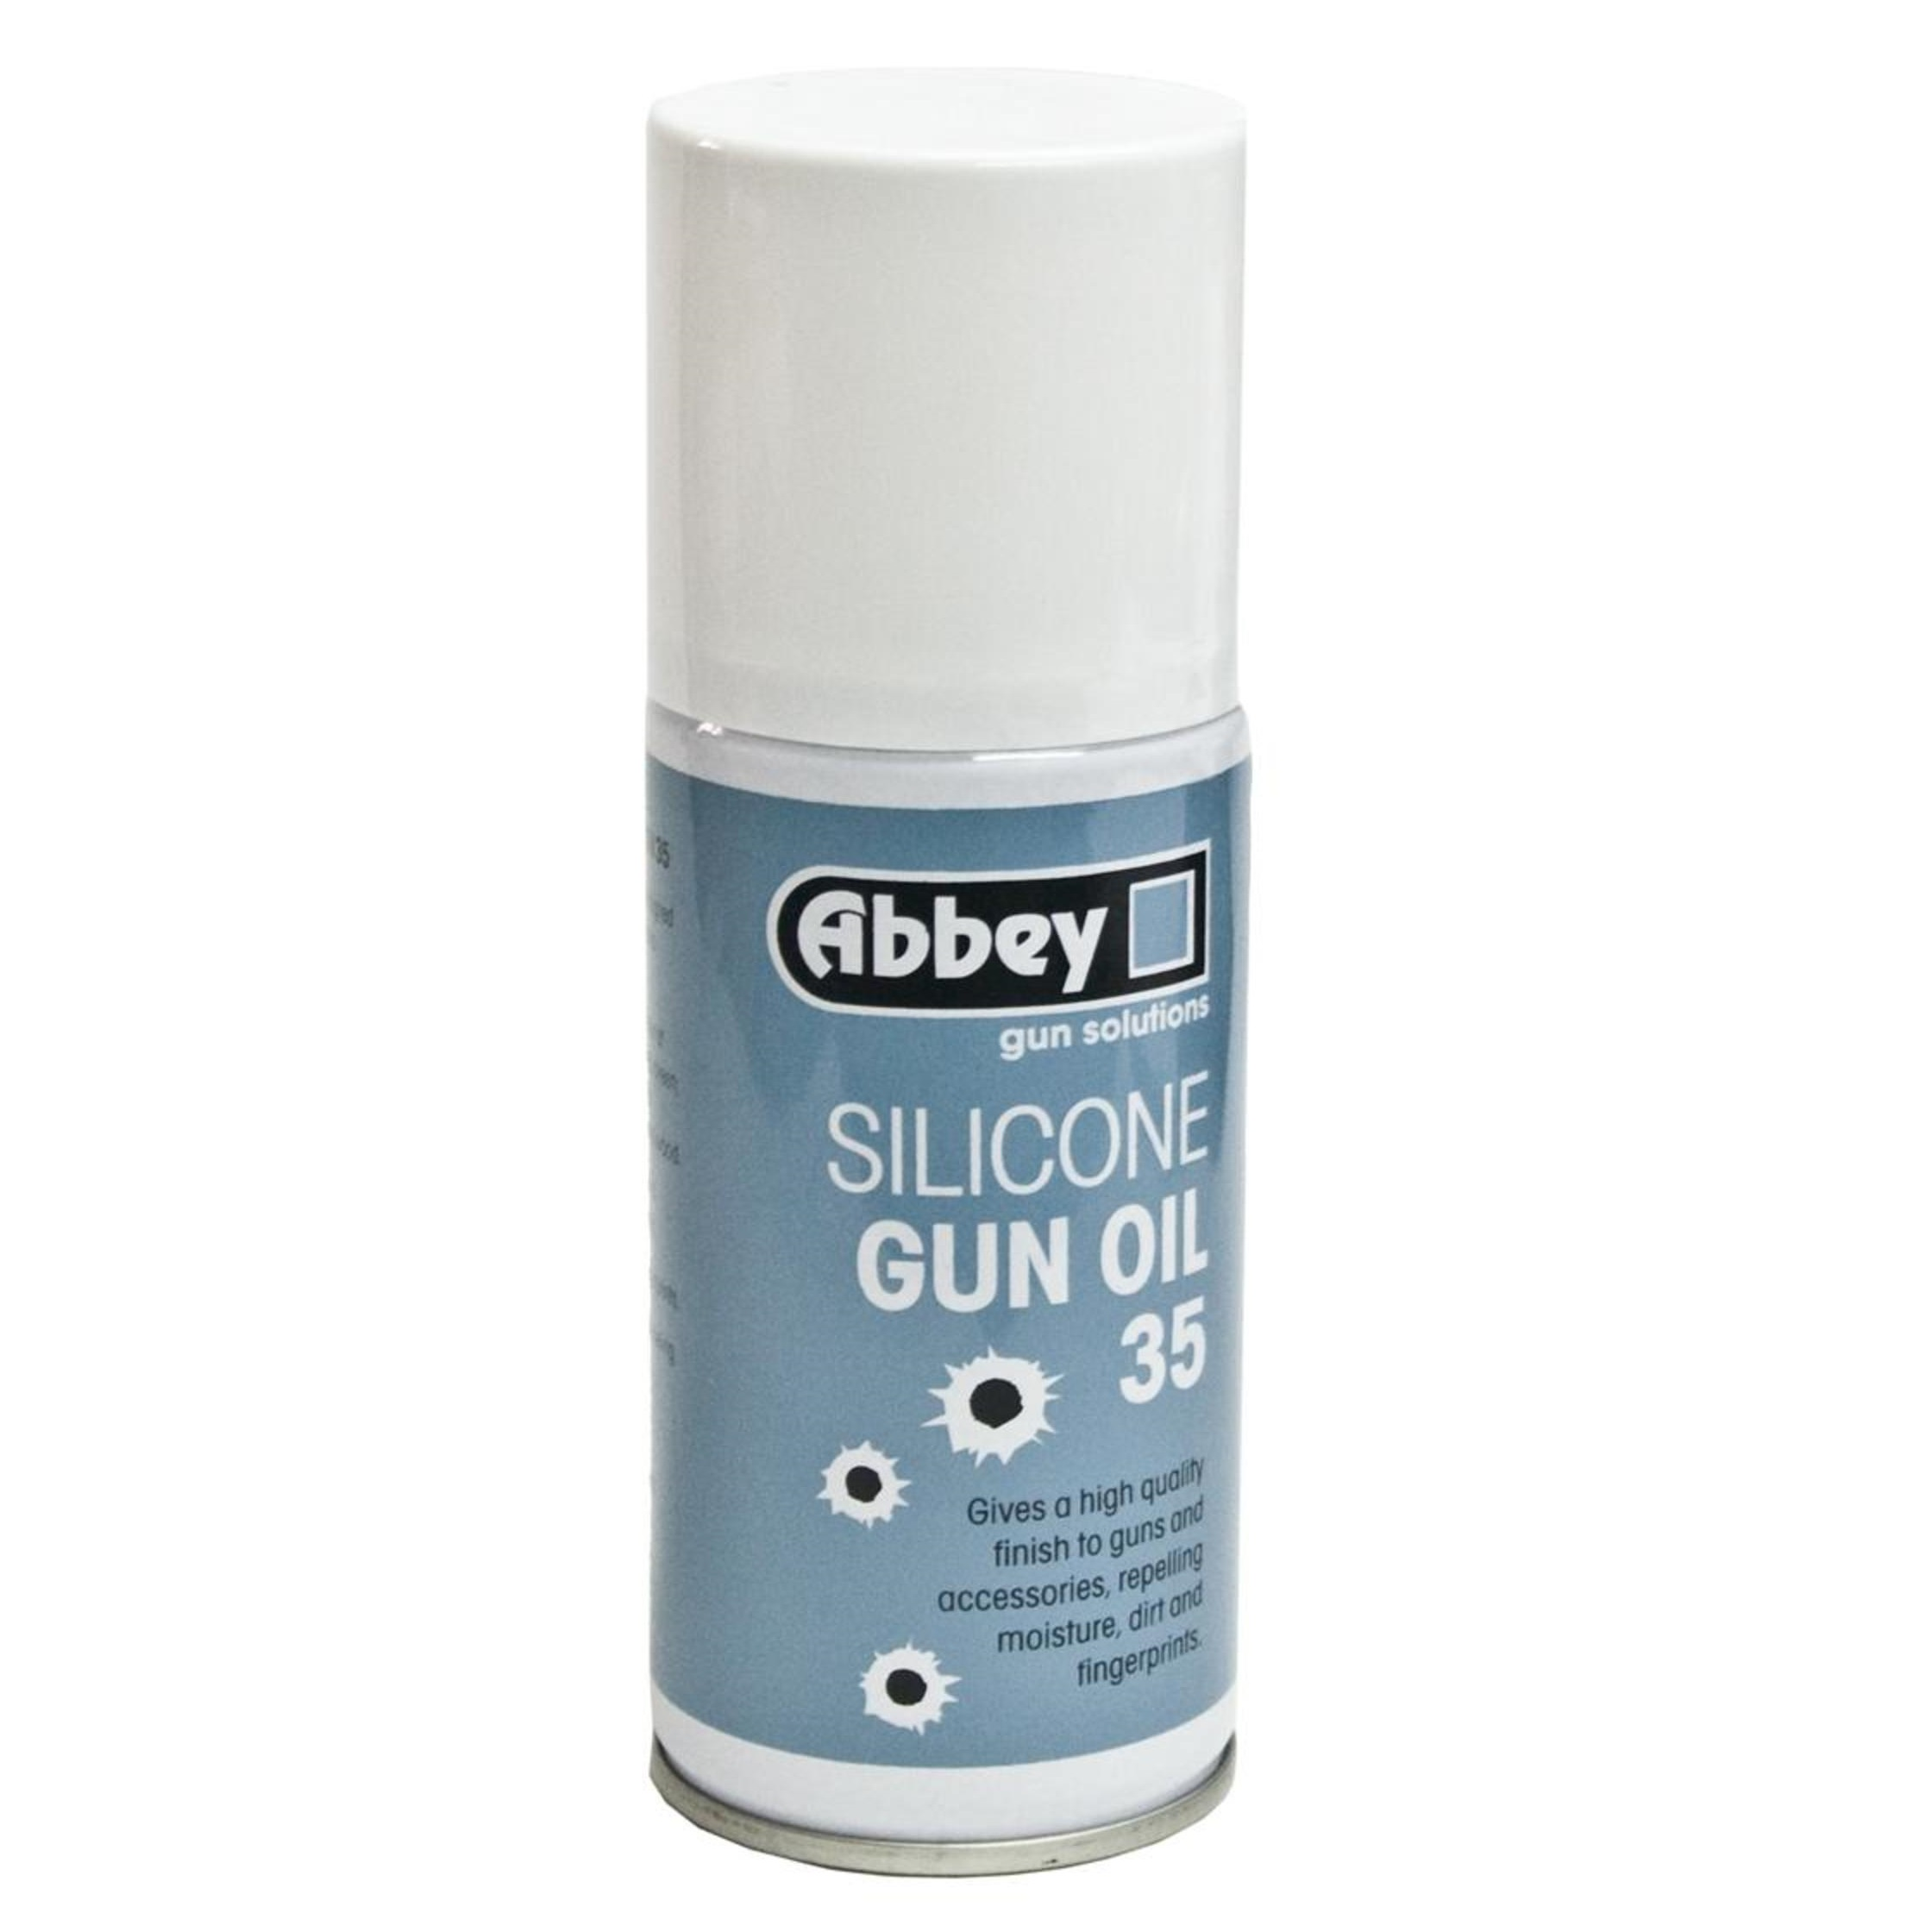 Abbey Silicone Gun Oil 35 Spray - 150ml